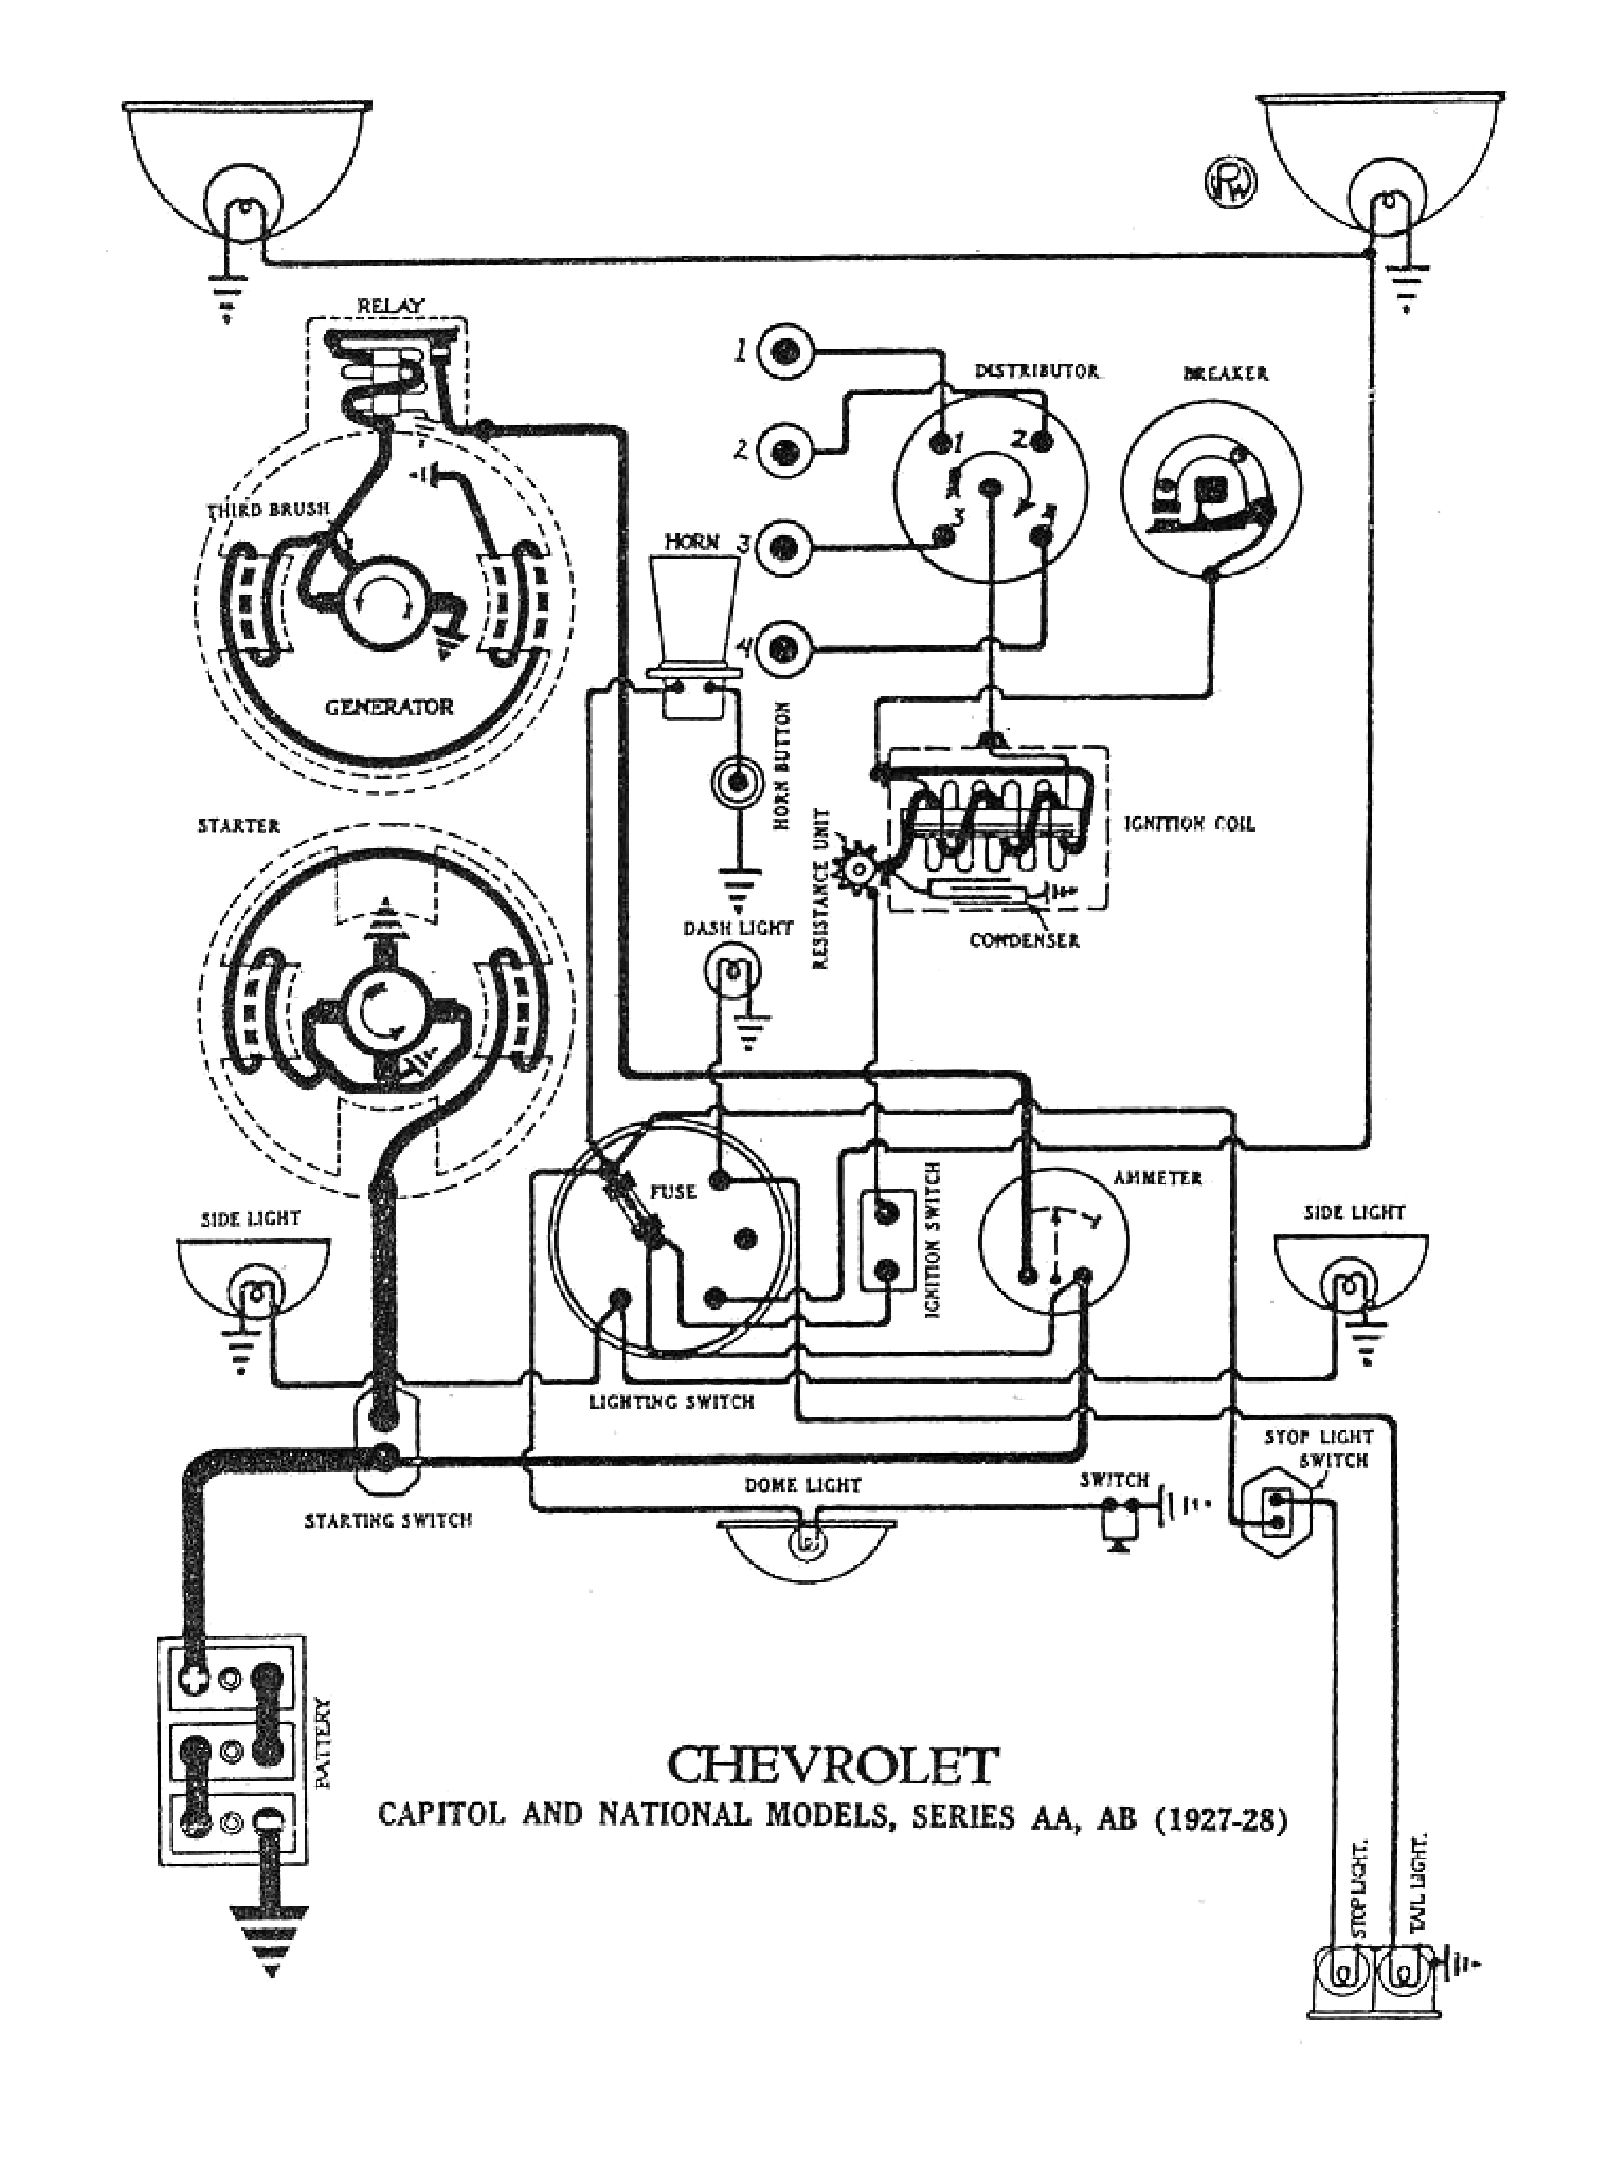 Ford Model Y Wiring Diagram Library Amp Meter Chevy Diagrams Wire Harness Schematic 1928 Capitol National Models